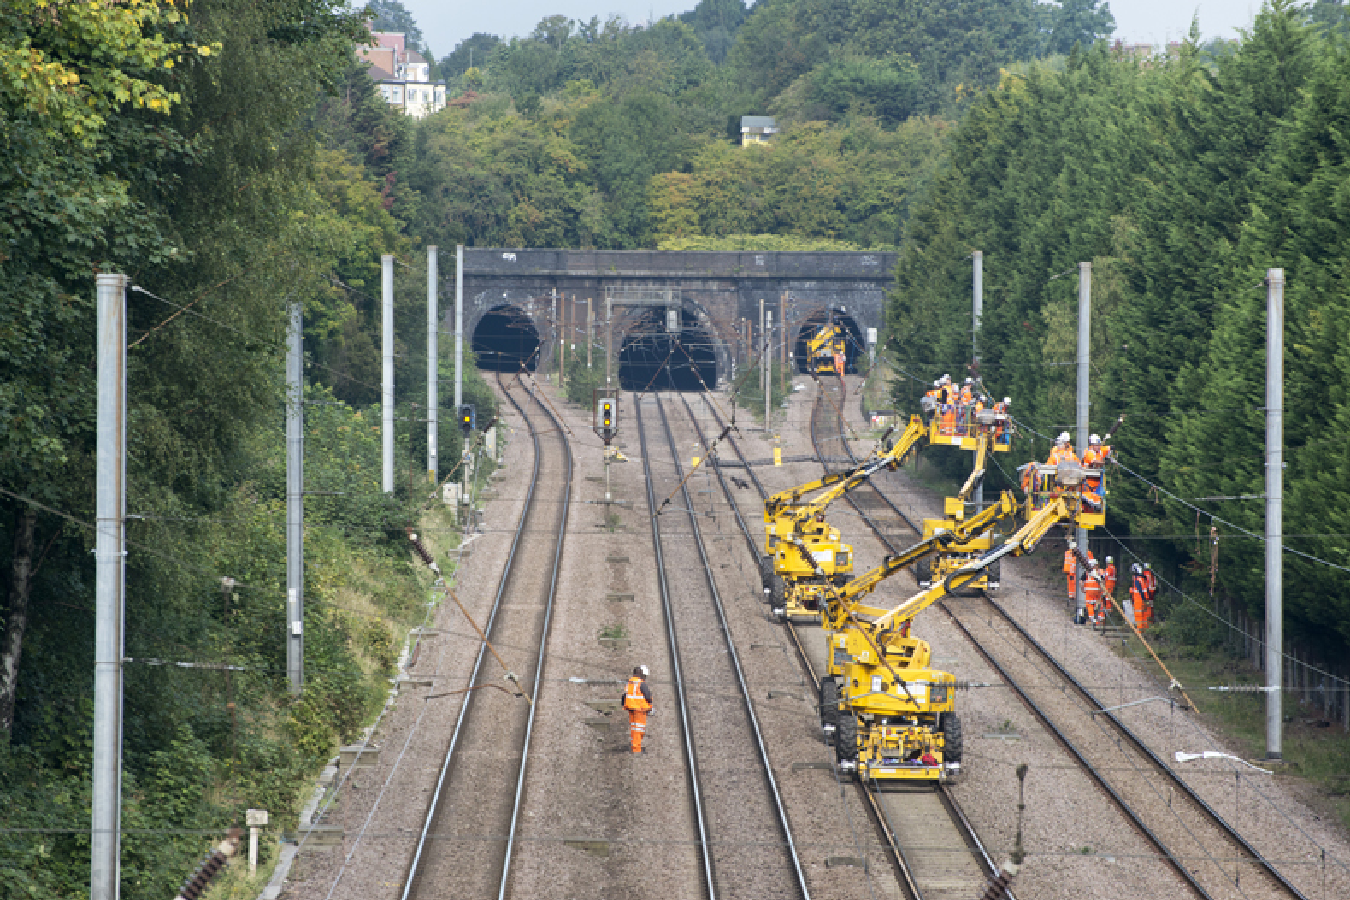 OLE renewal worksite in the UK - Railway Electrification